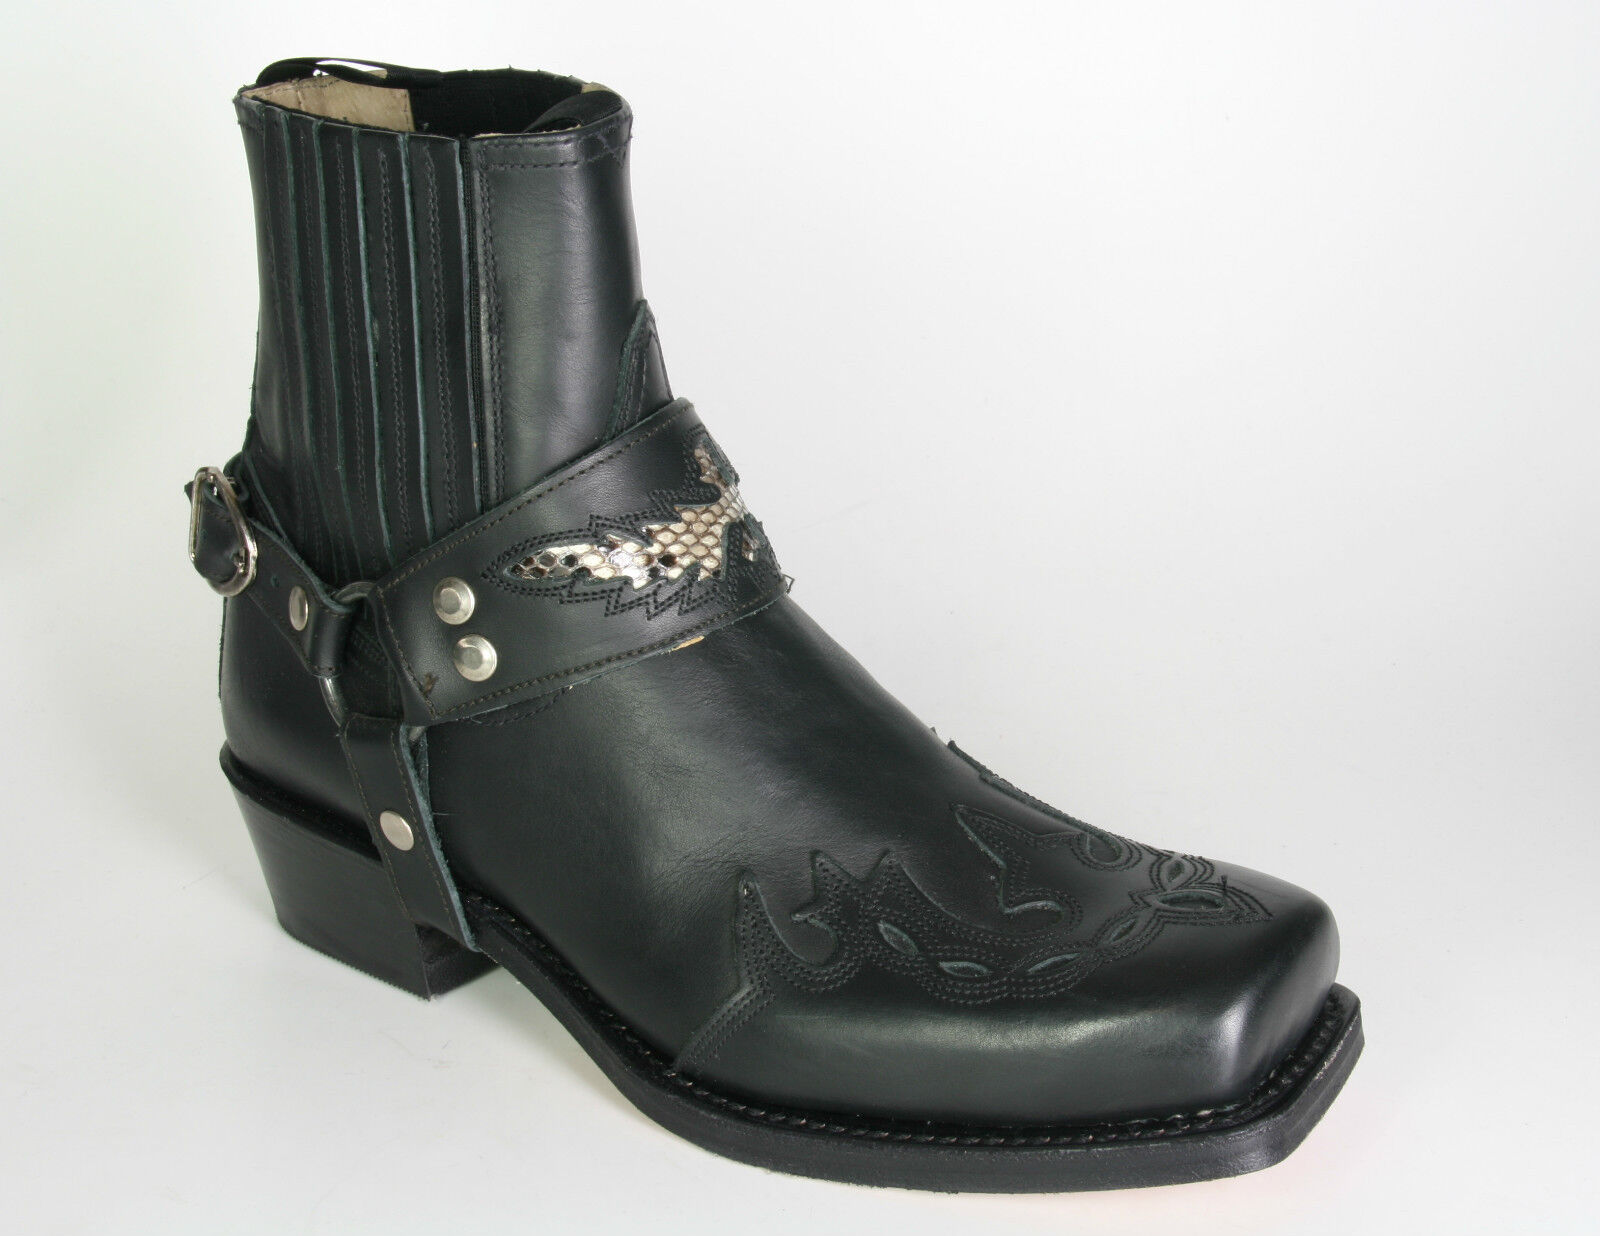 7811 sendra Bottes Motard strong Monténégro flamme Bottines Noir